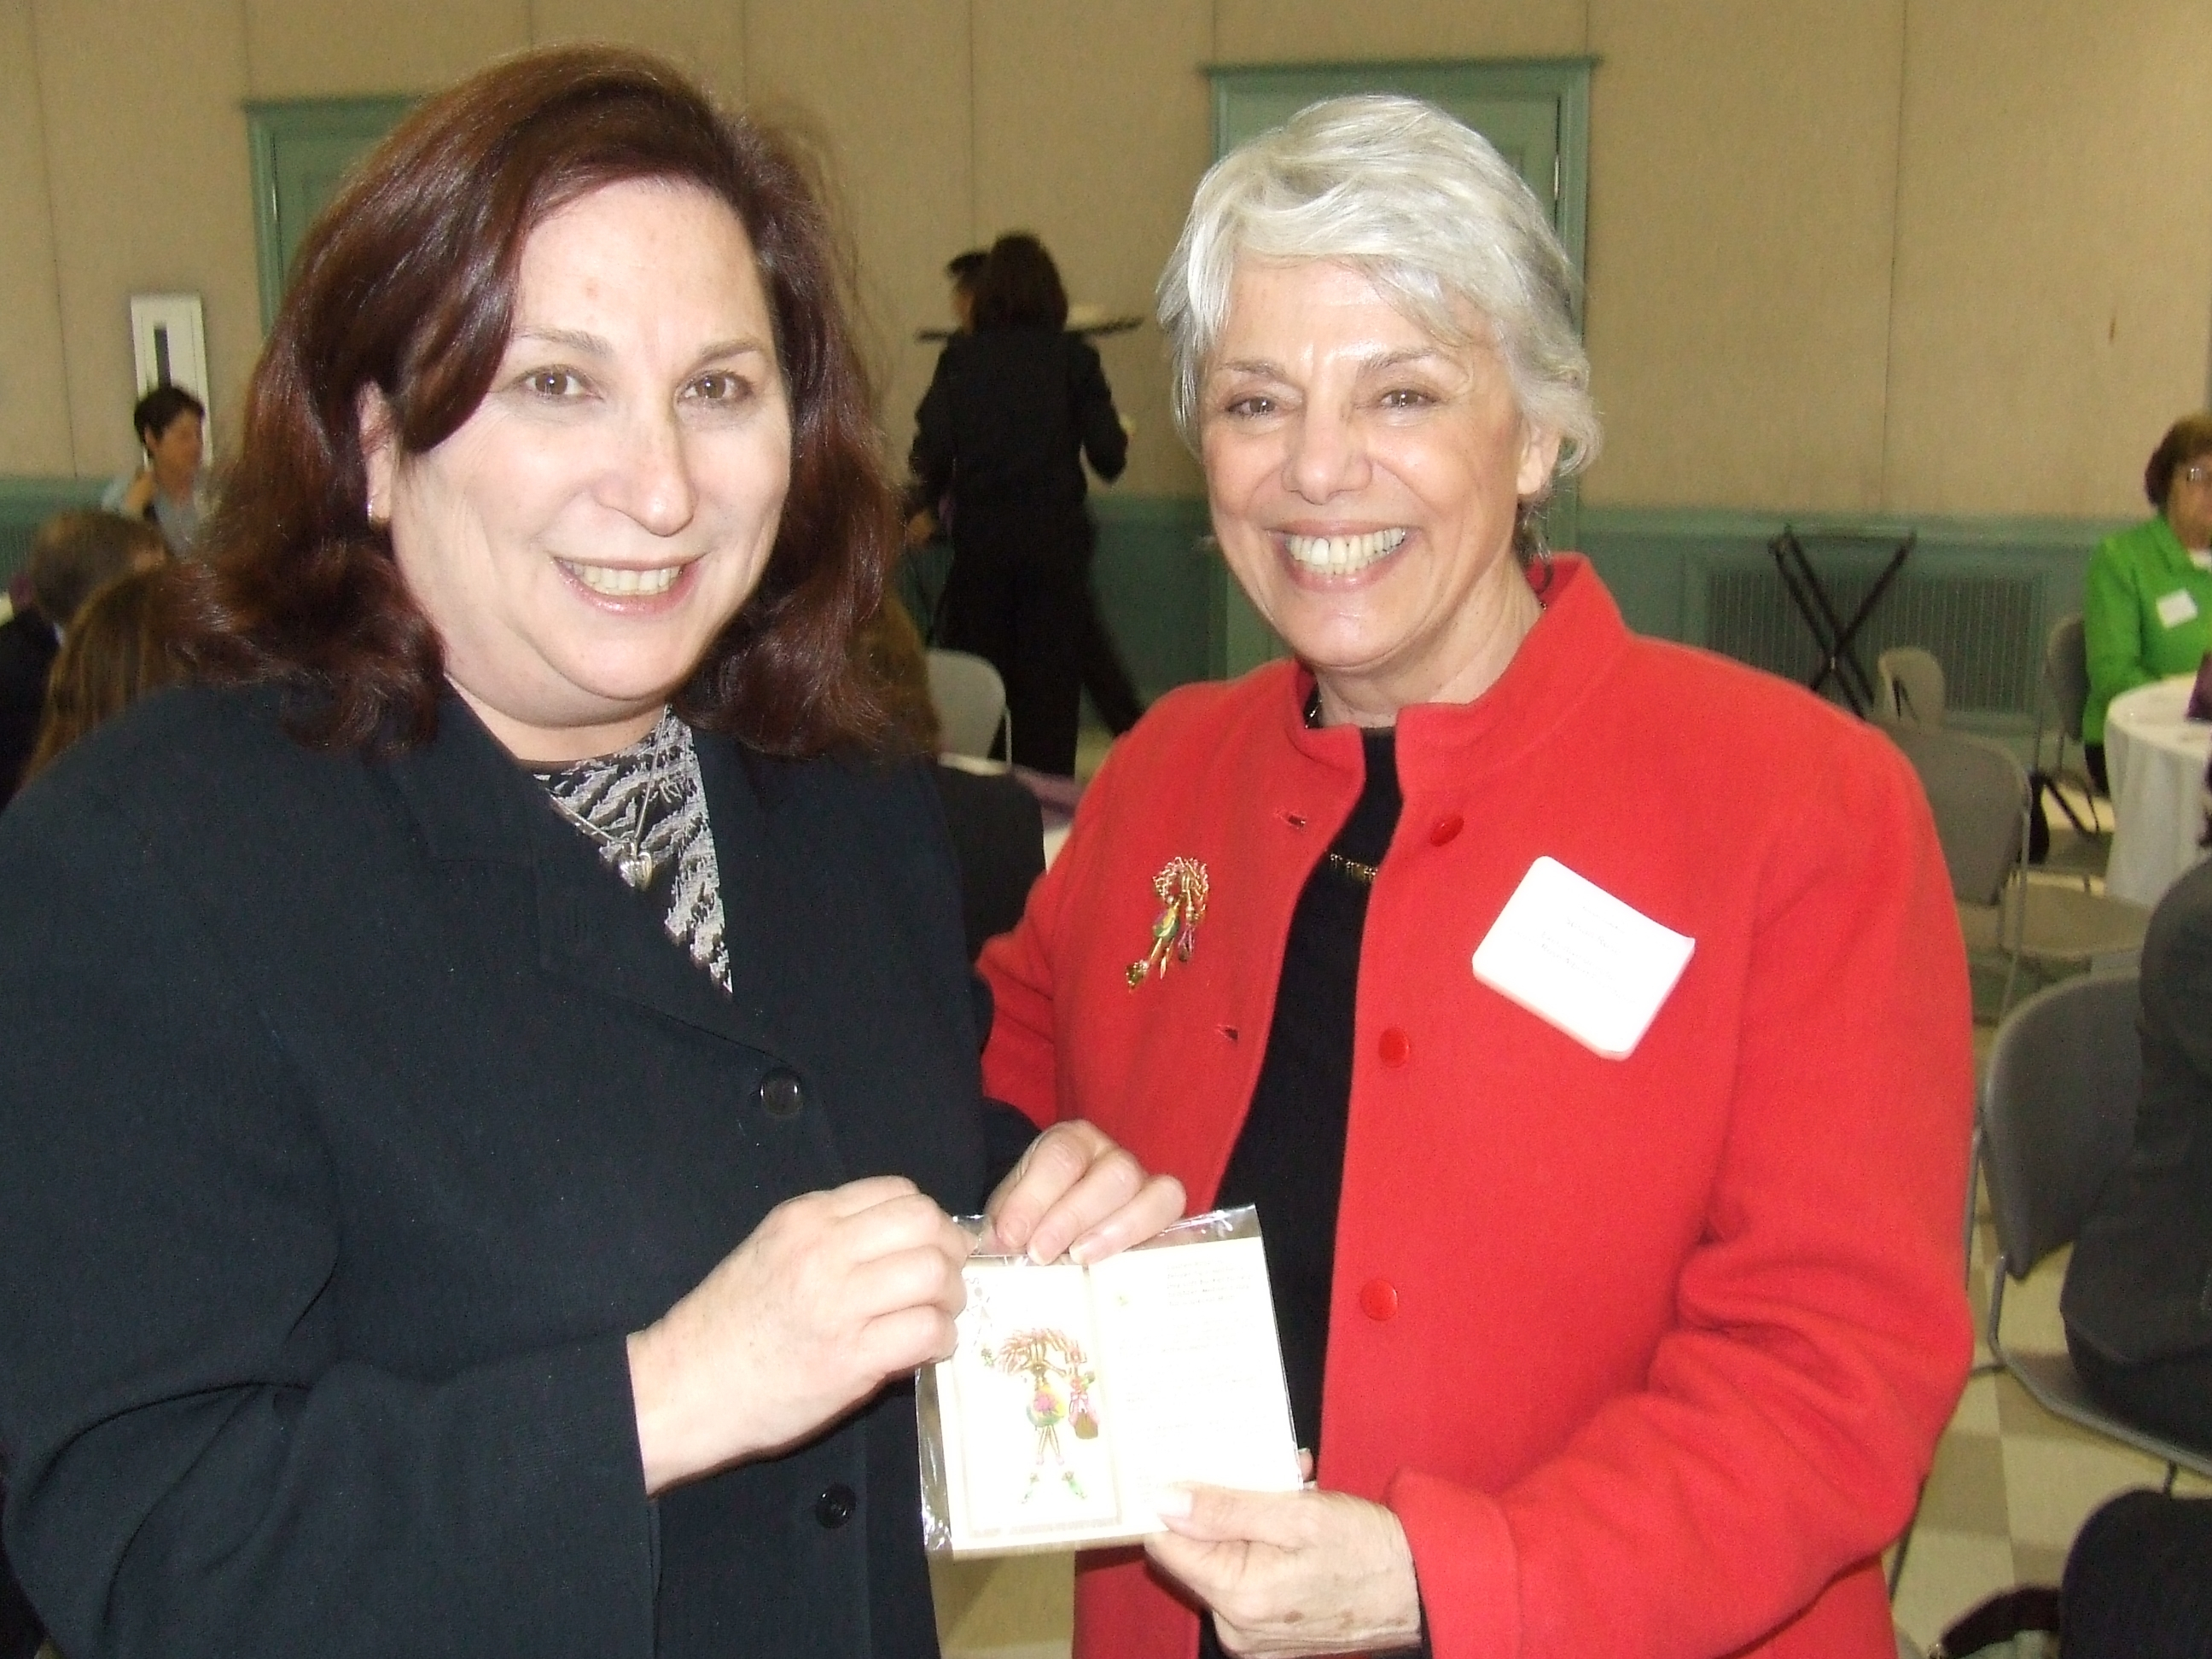 2009 DCA Commissioner Susan Bass Levin with LRAF Founder Susan Rose